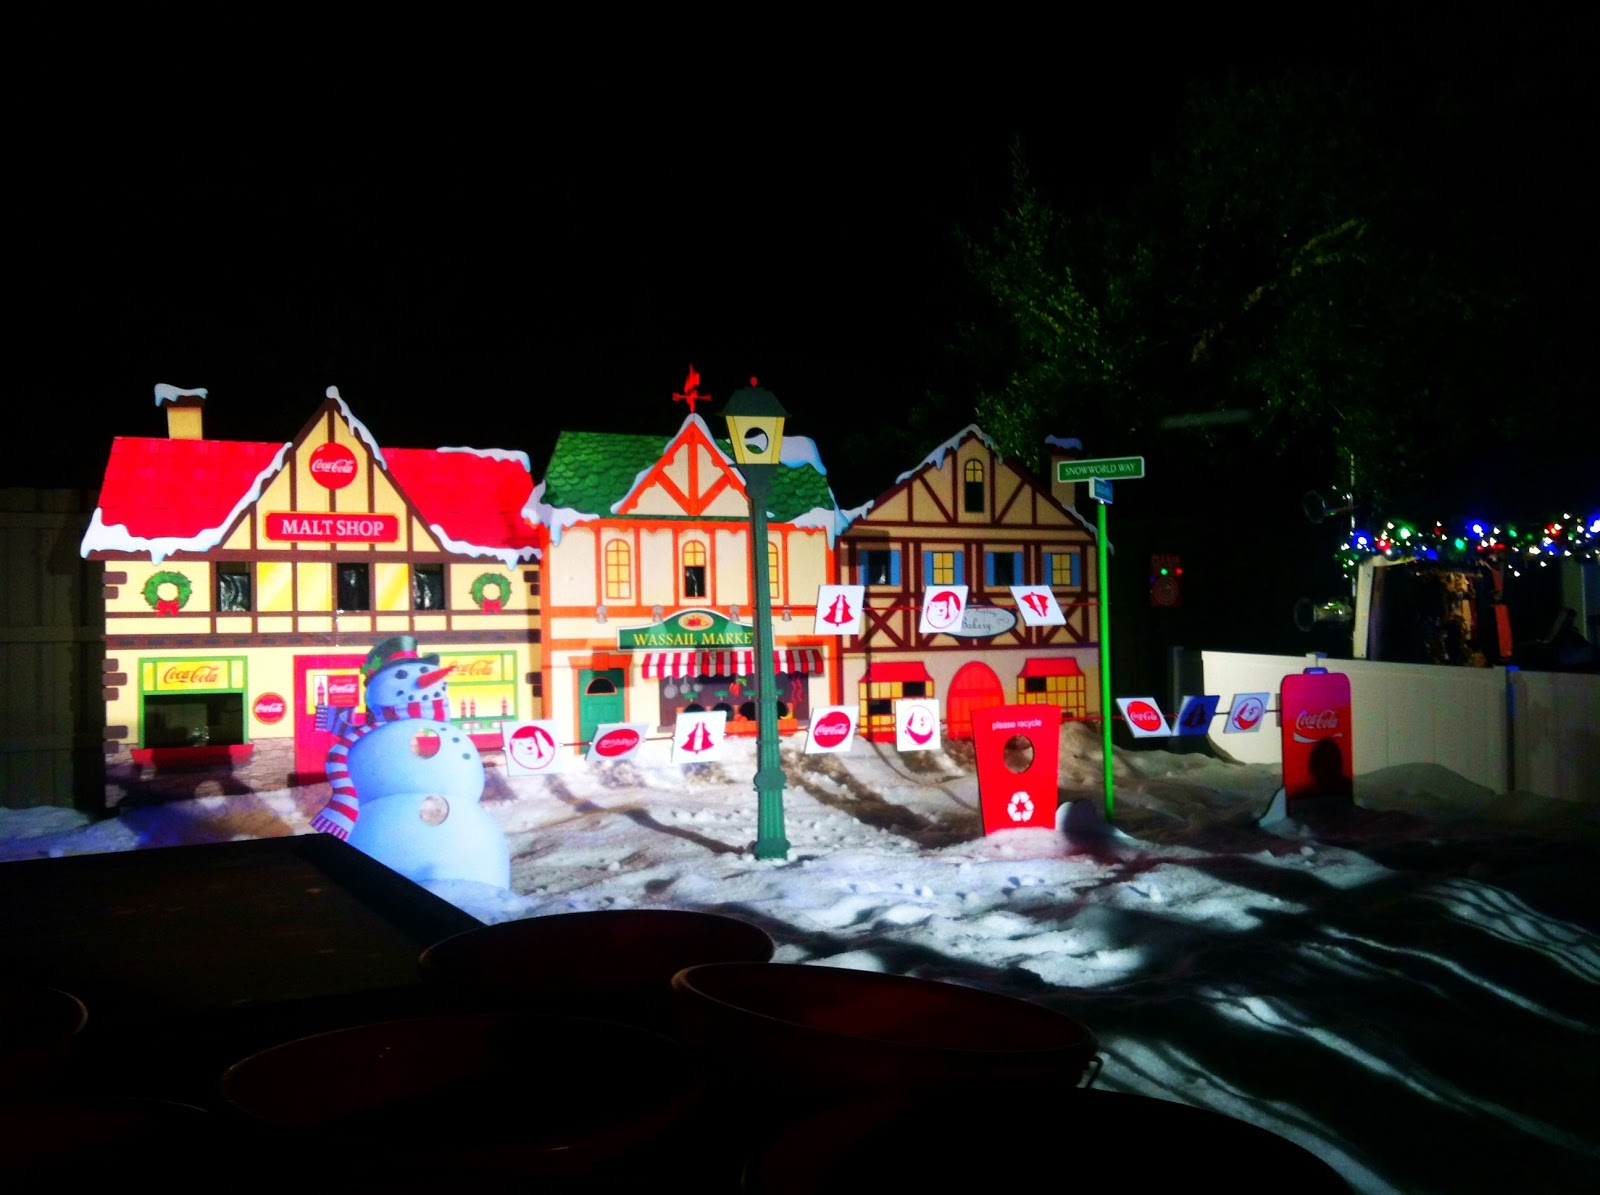 Christmas town at busch gardens i run for wine - Busch gardens christmas town rides ...